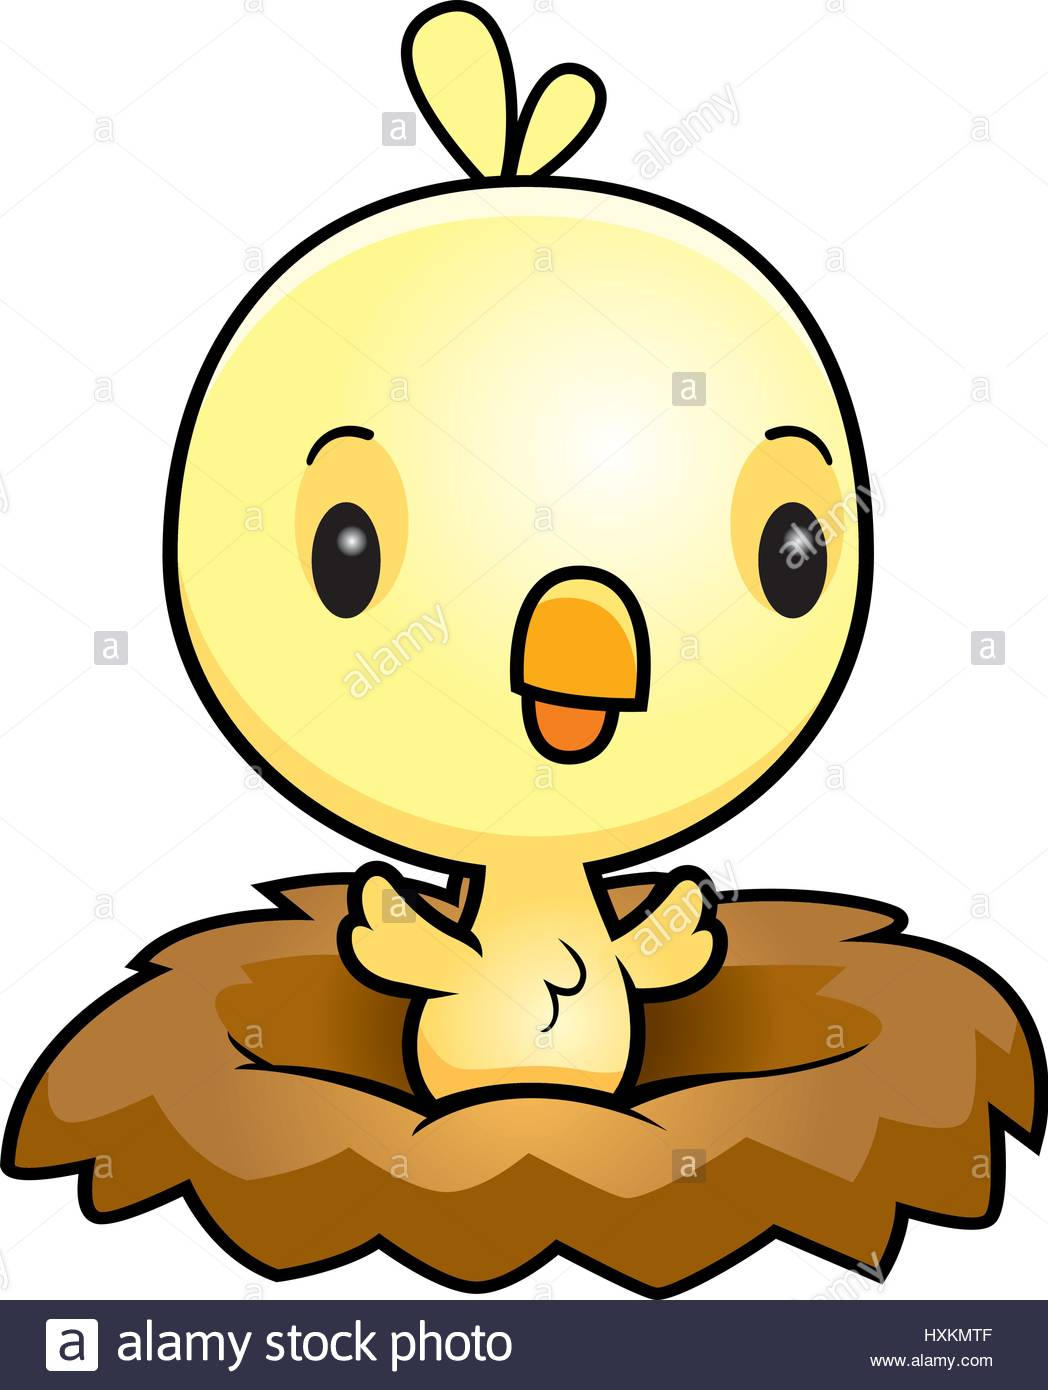 1048x1390 A Cartoon Illustration Of A Baby Chick In A Nest Stock Vector Art